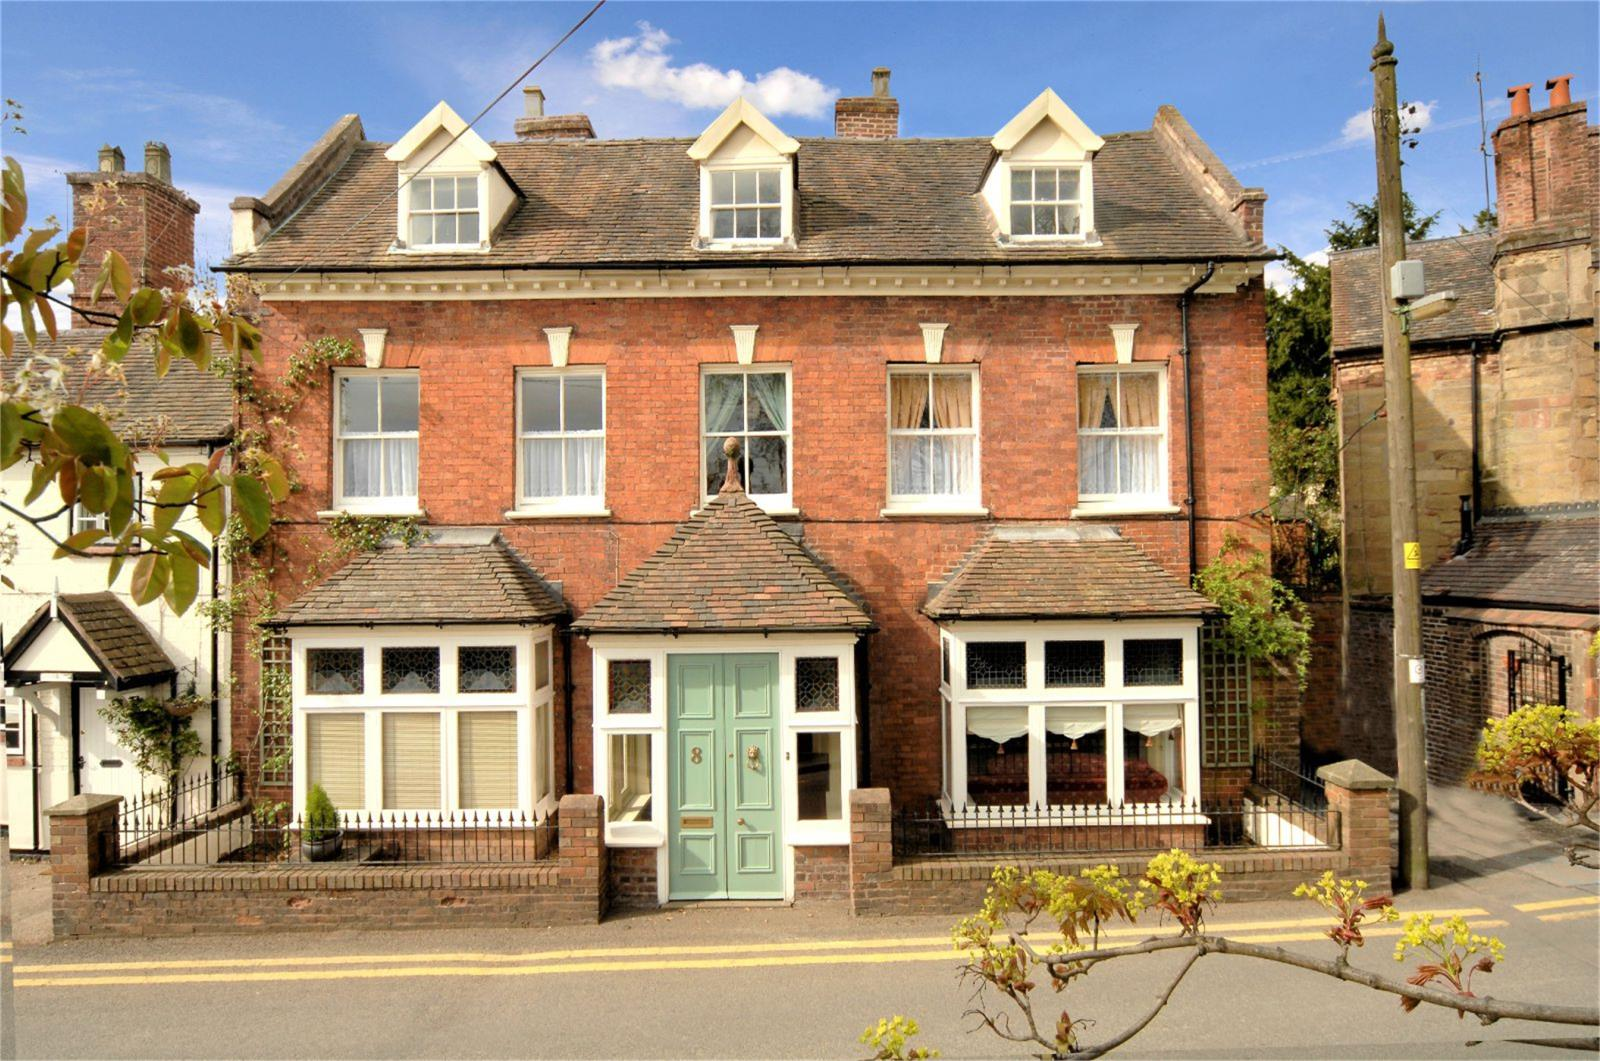 6 Bedrooms Terraced House for sale in East Lynne, 8 Church Street, Madeley, Shropshire, TF7